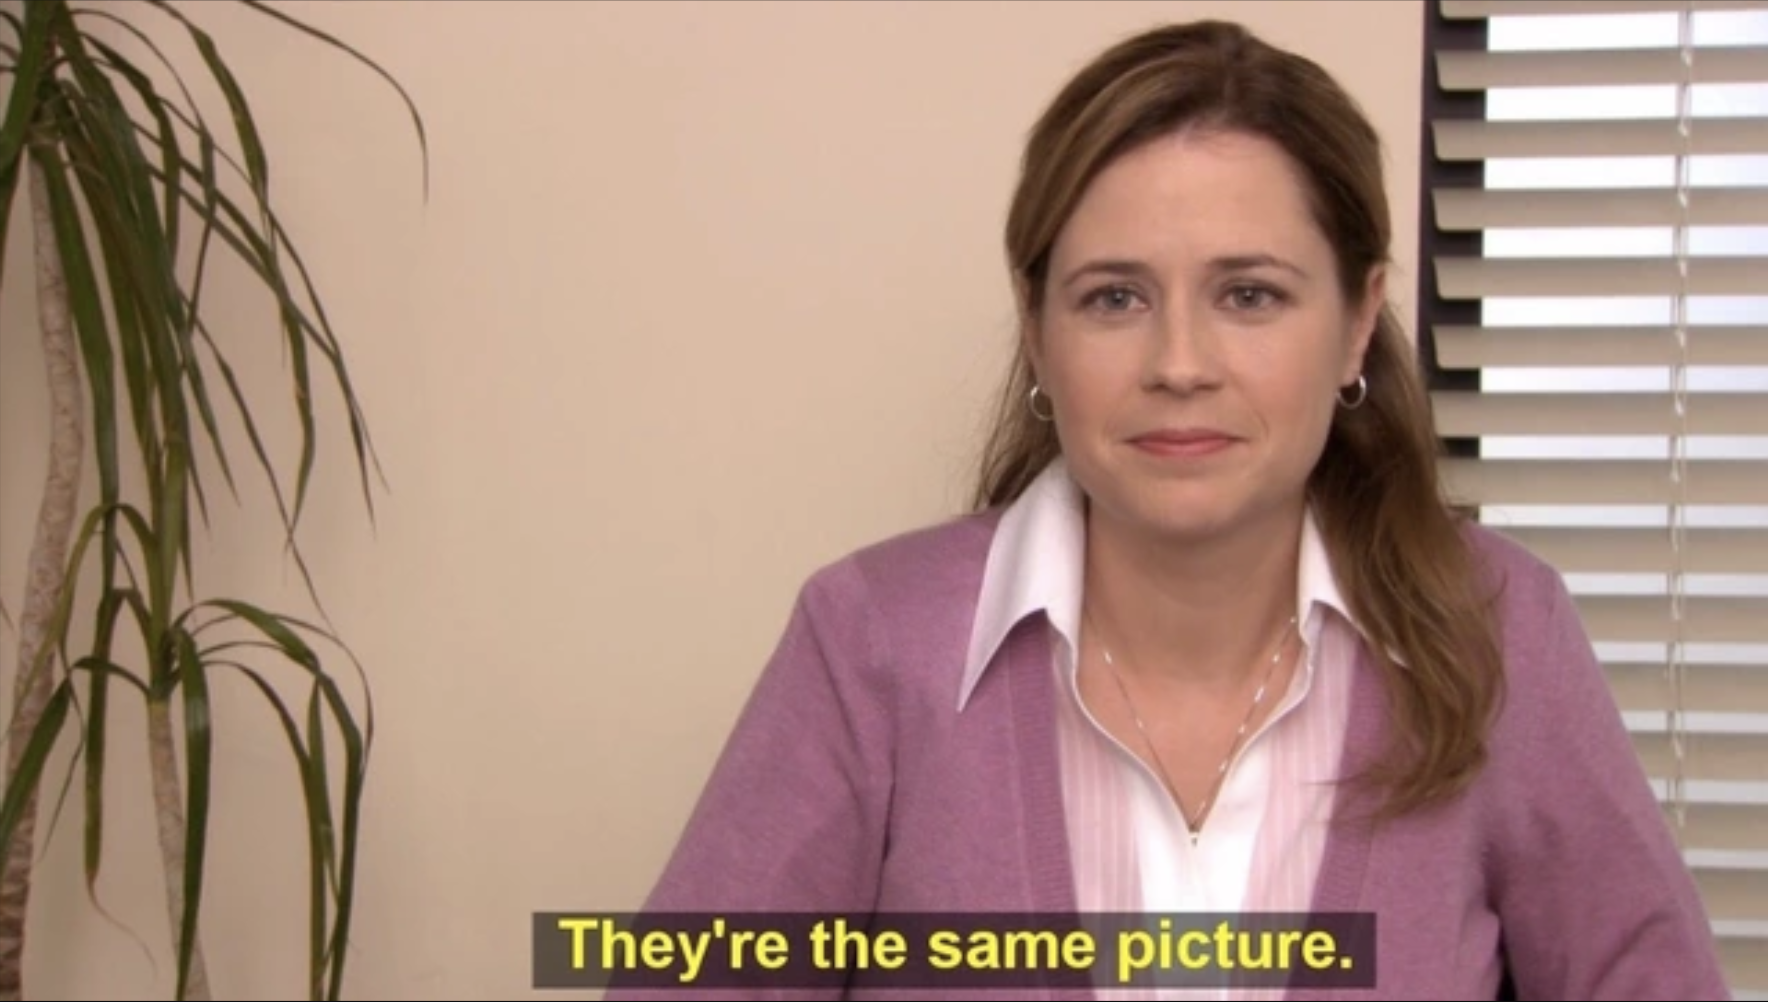 They're the same picture pam the office meme